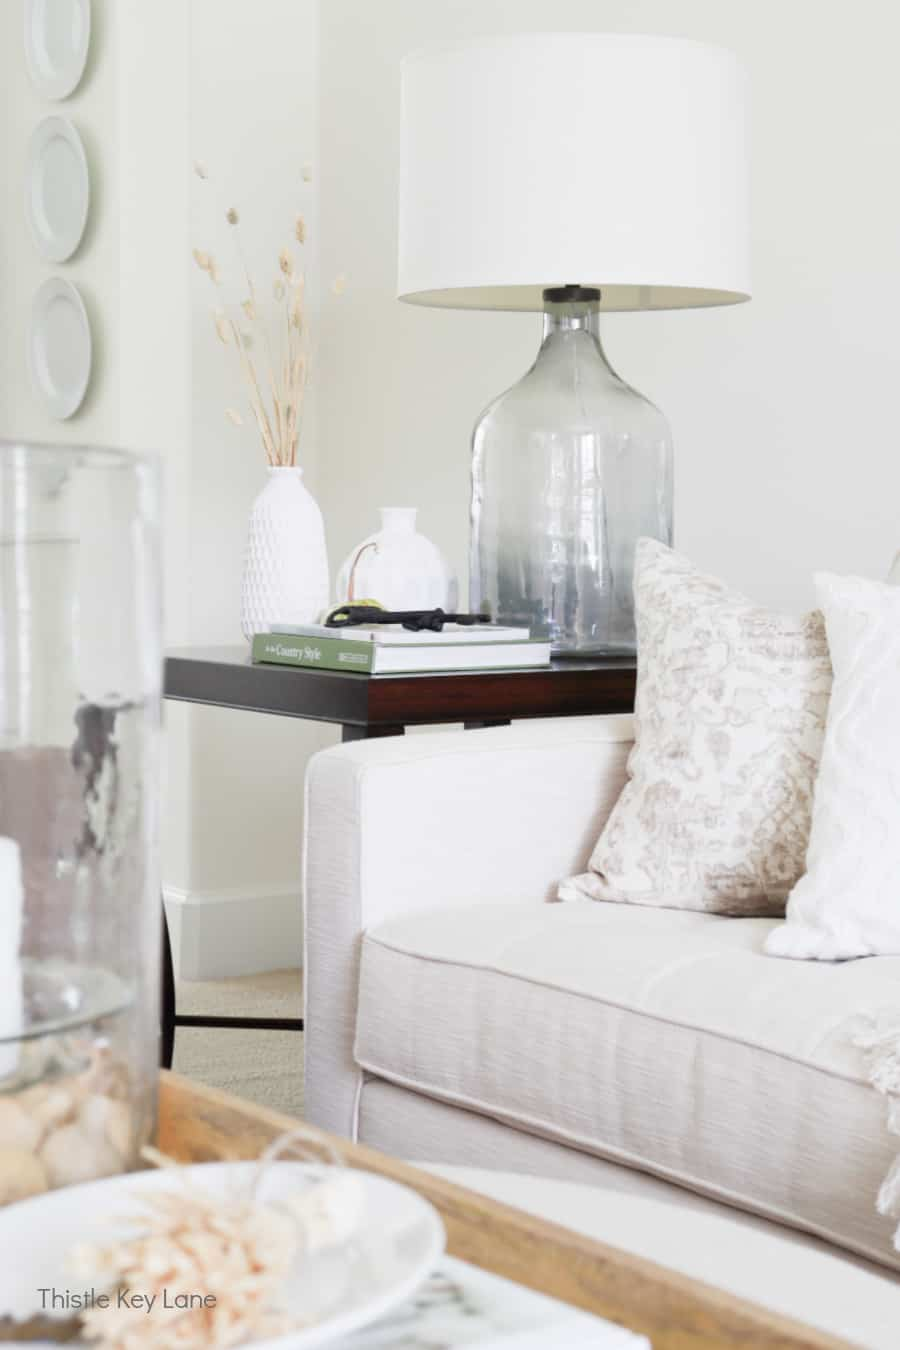 Sofa and end table with neutral colors. Subtle Ways To Decorate For Fall.